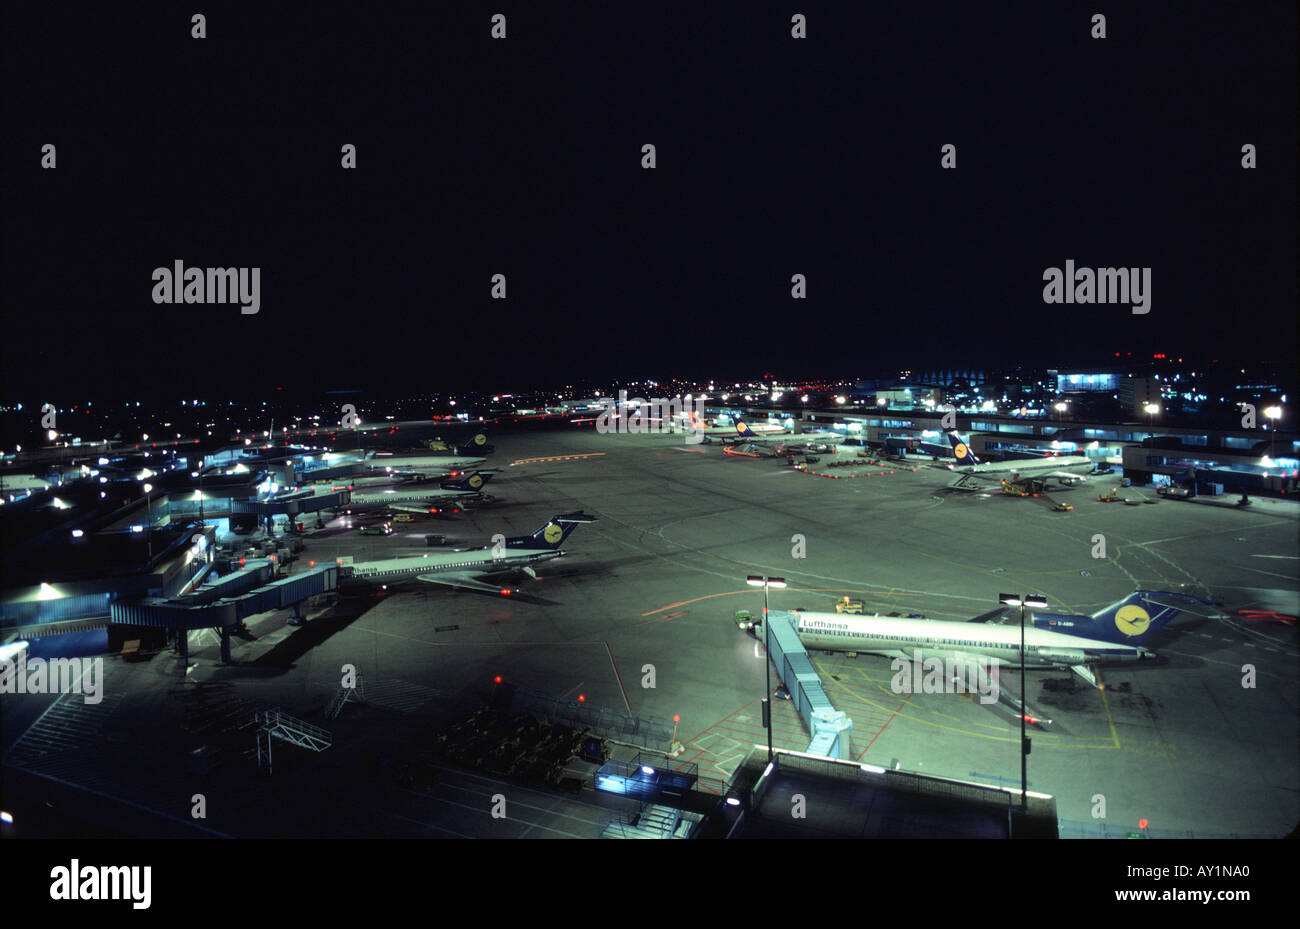 Airport at night - Stock Image